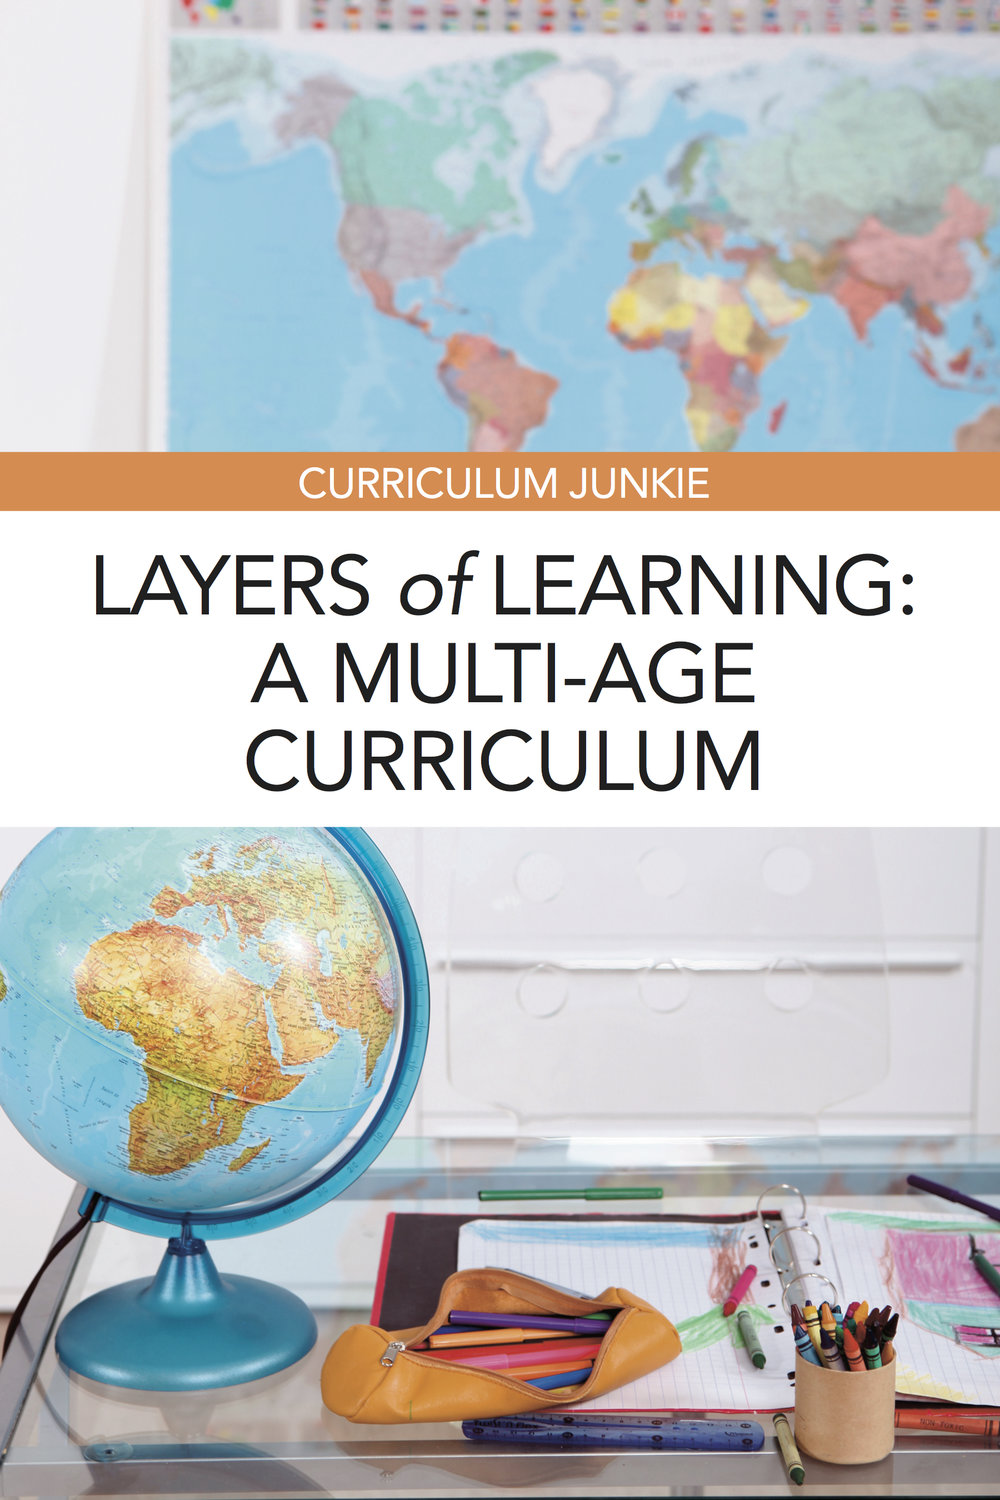 Layers of Learning is history-centric, unit study-style curriculum that's great across different age groups